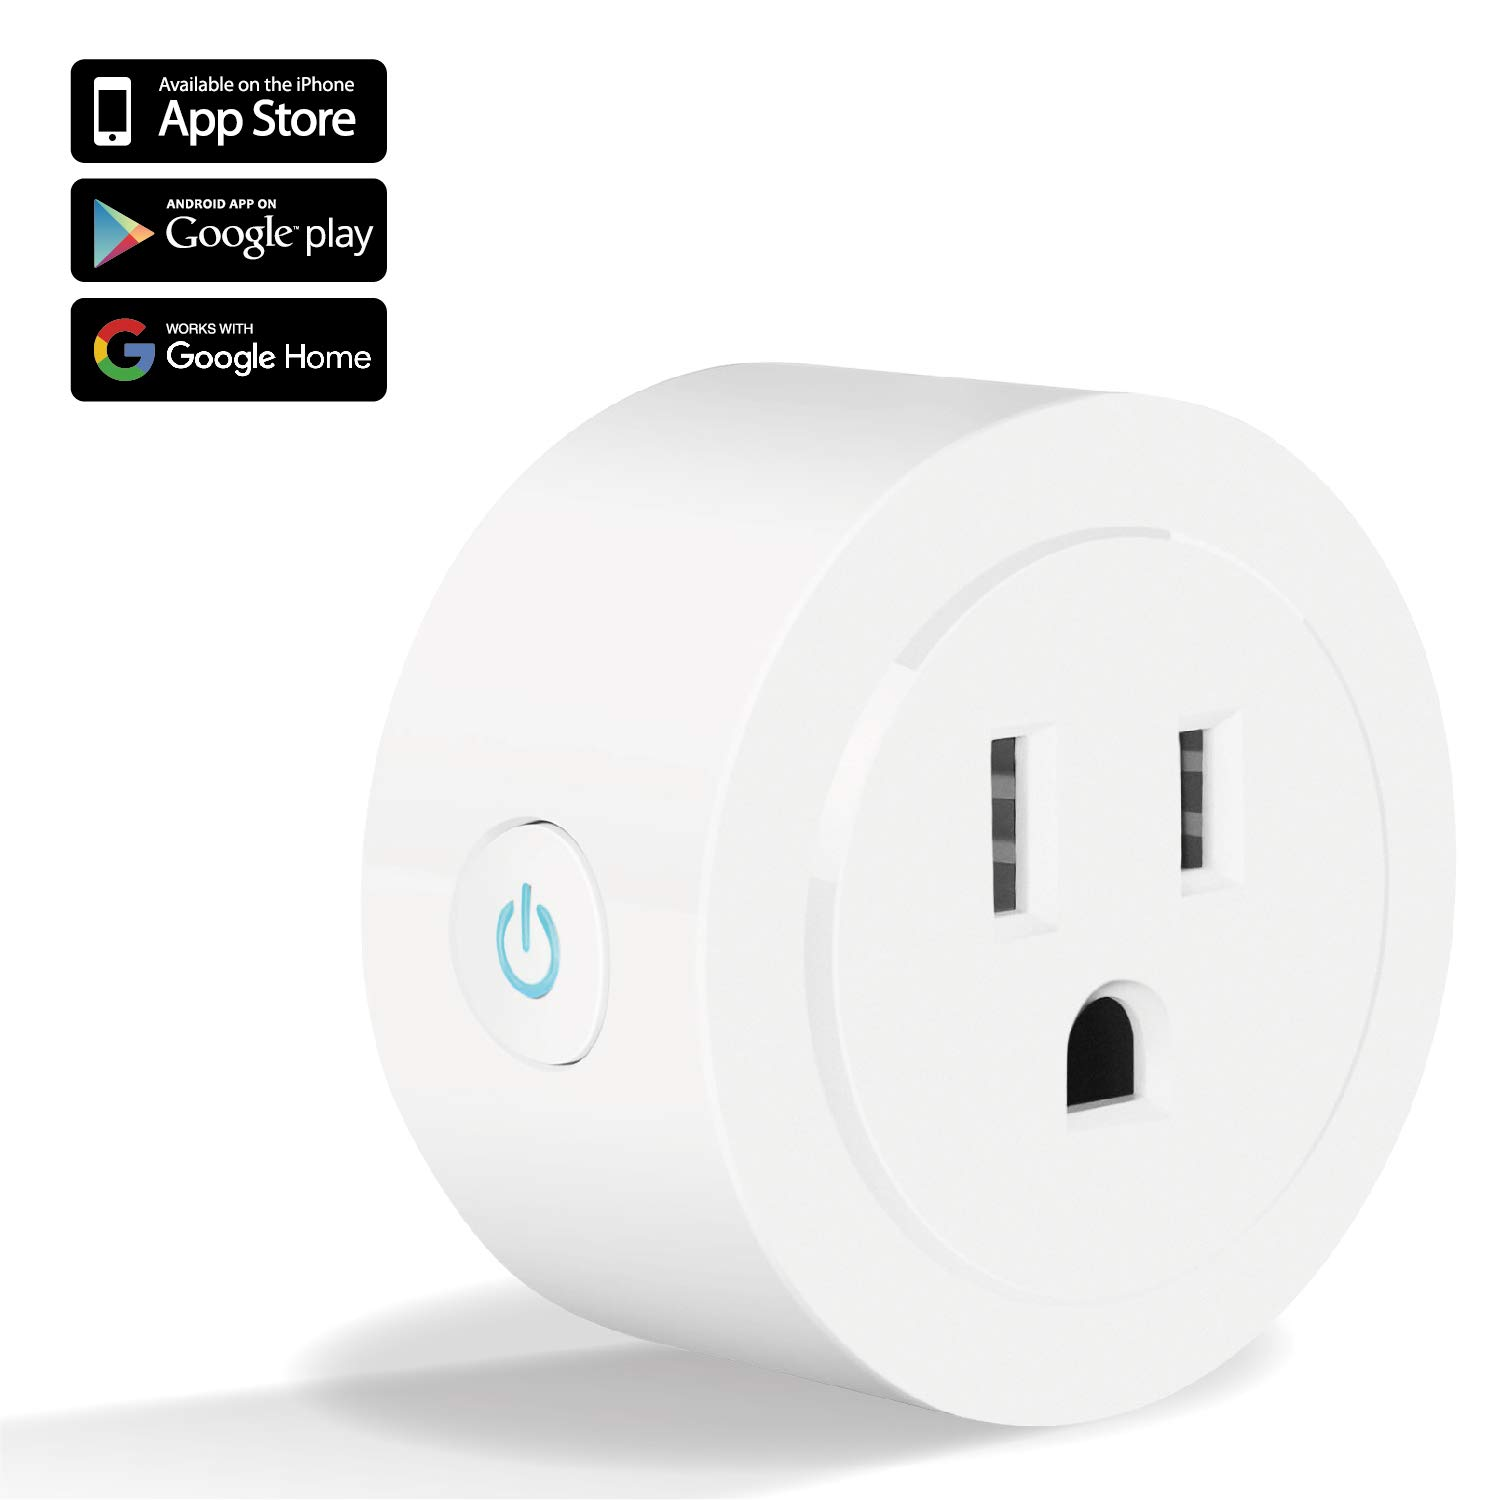 TNP Smart Plug Mini WiFi Outlet - Remote Control Smart Socket Wireless Compatible with Alexa Echo Google Home, No Hub Required, Timer Energy Meter Switch Socket Android, iOS (White) - 1 Pack